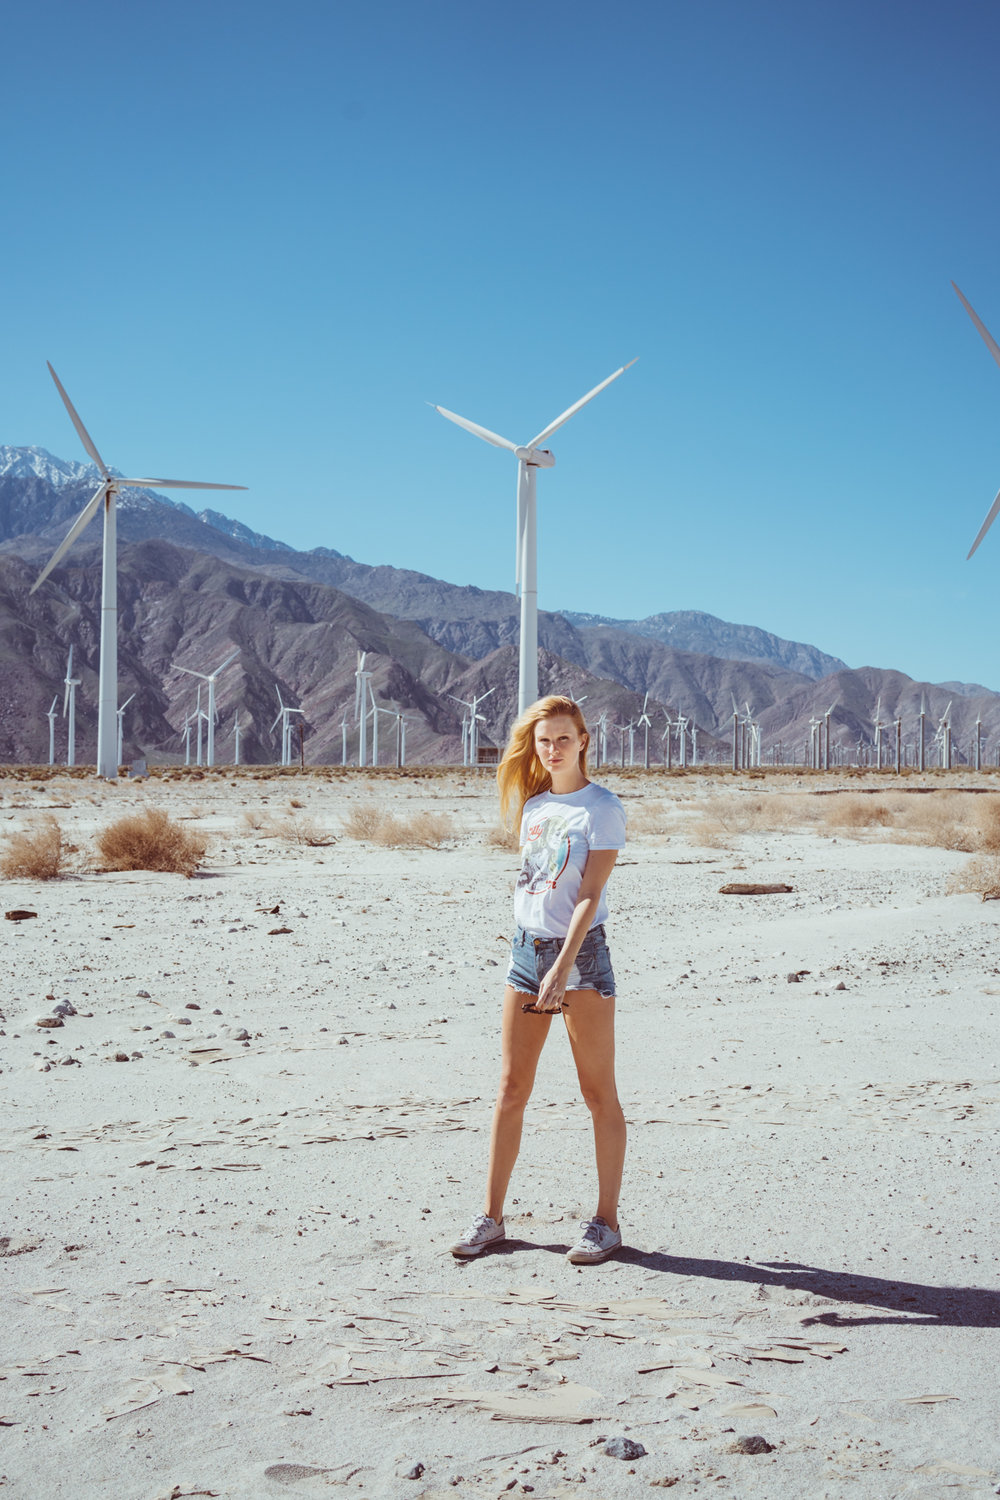 Palm Springs Windmills